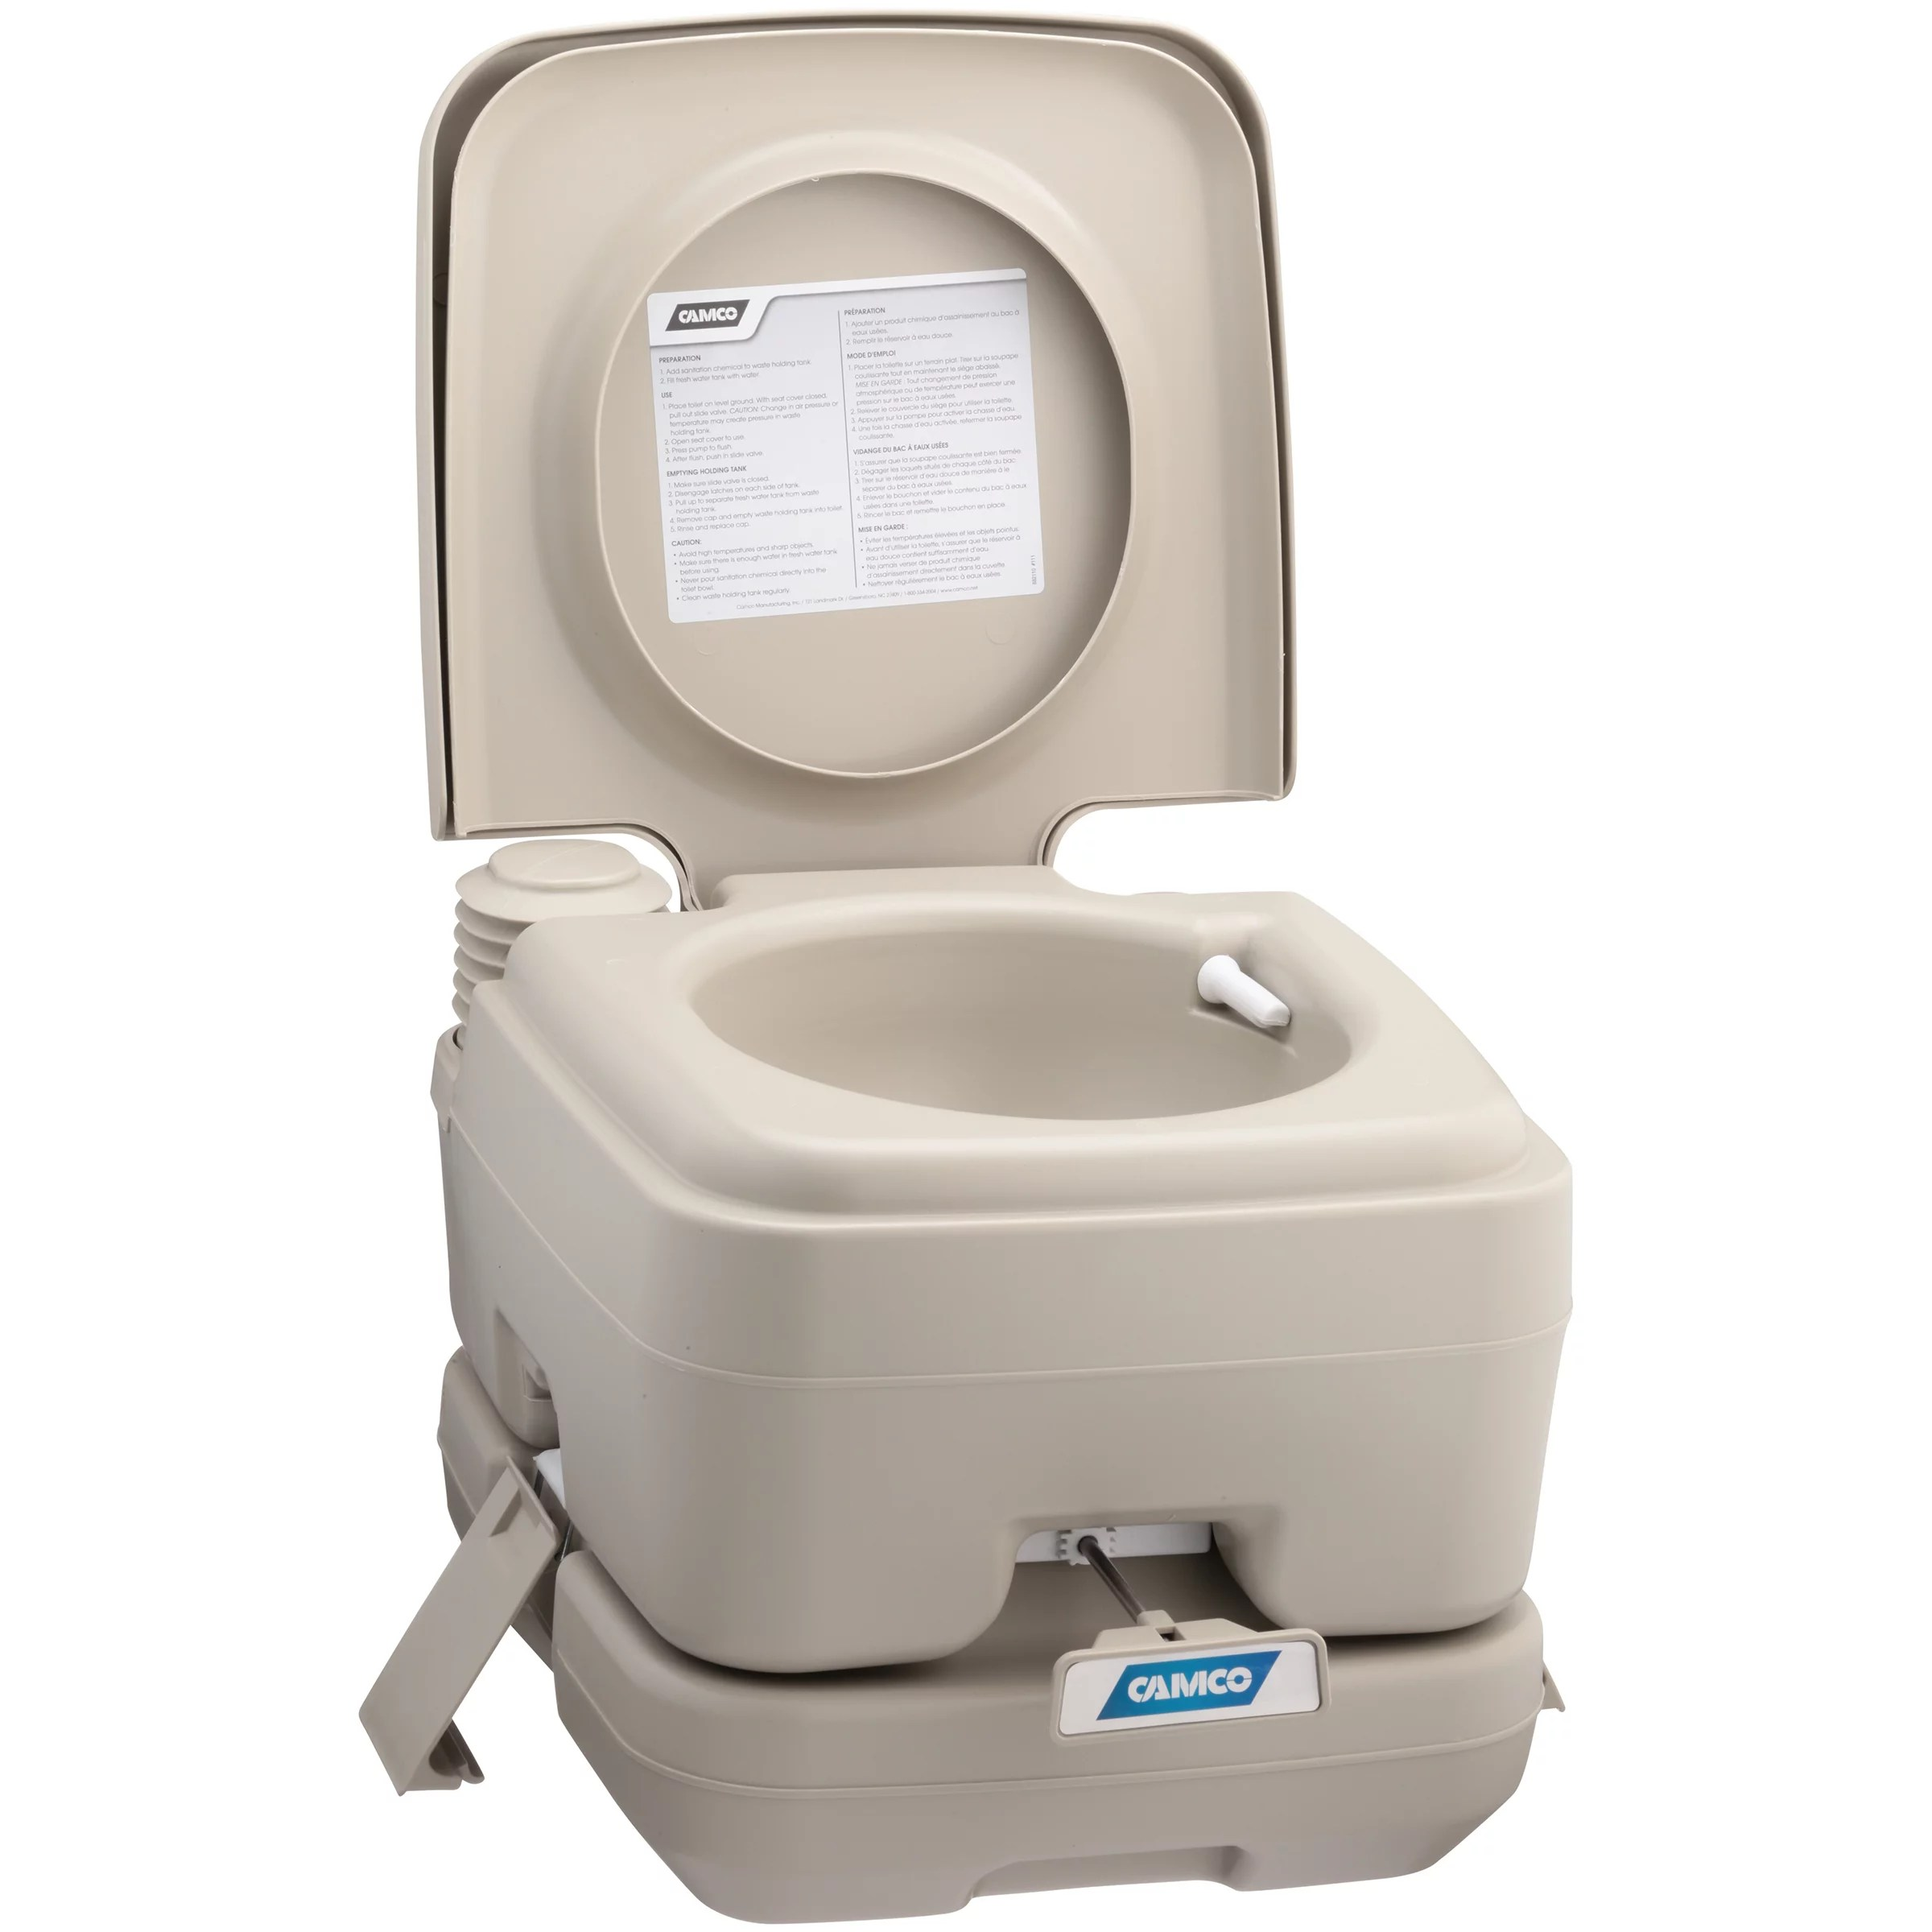 Camping Toilet Camco Portable Toilet With Rv Toilet Treatment Drop Ins